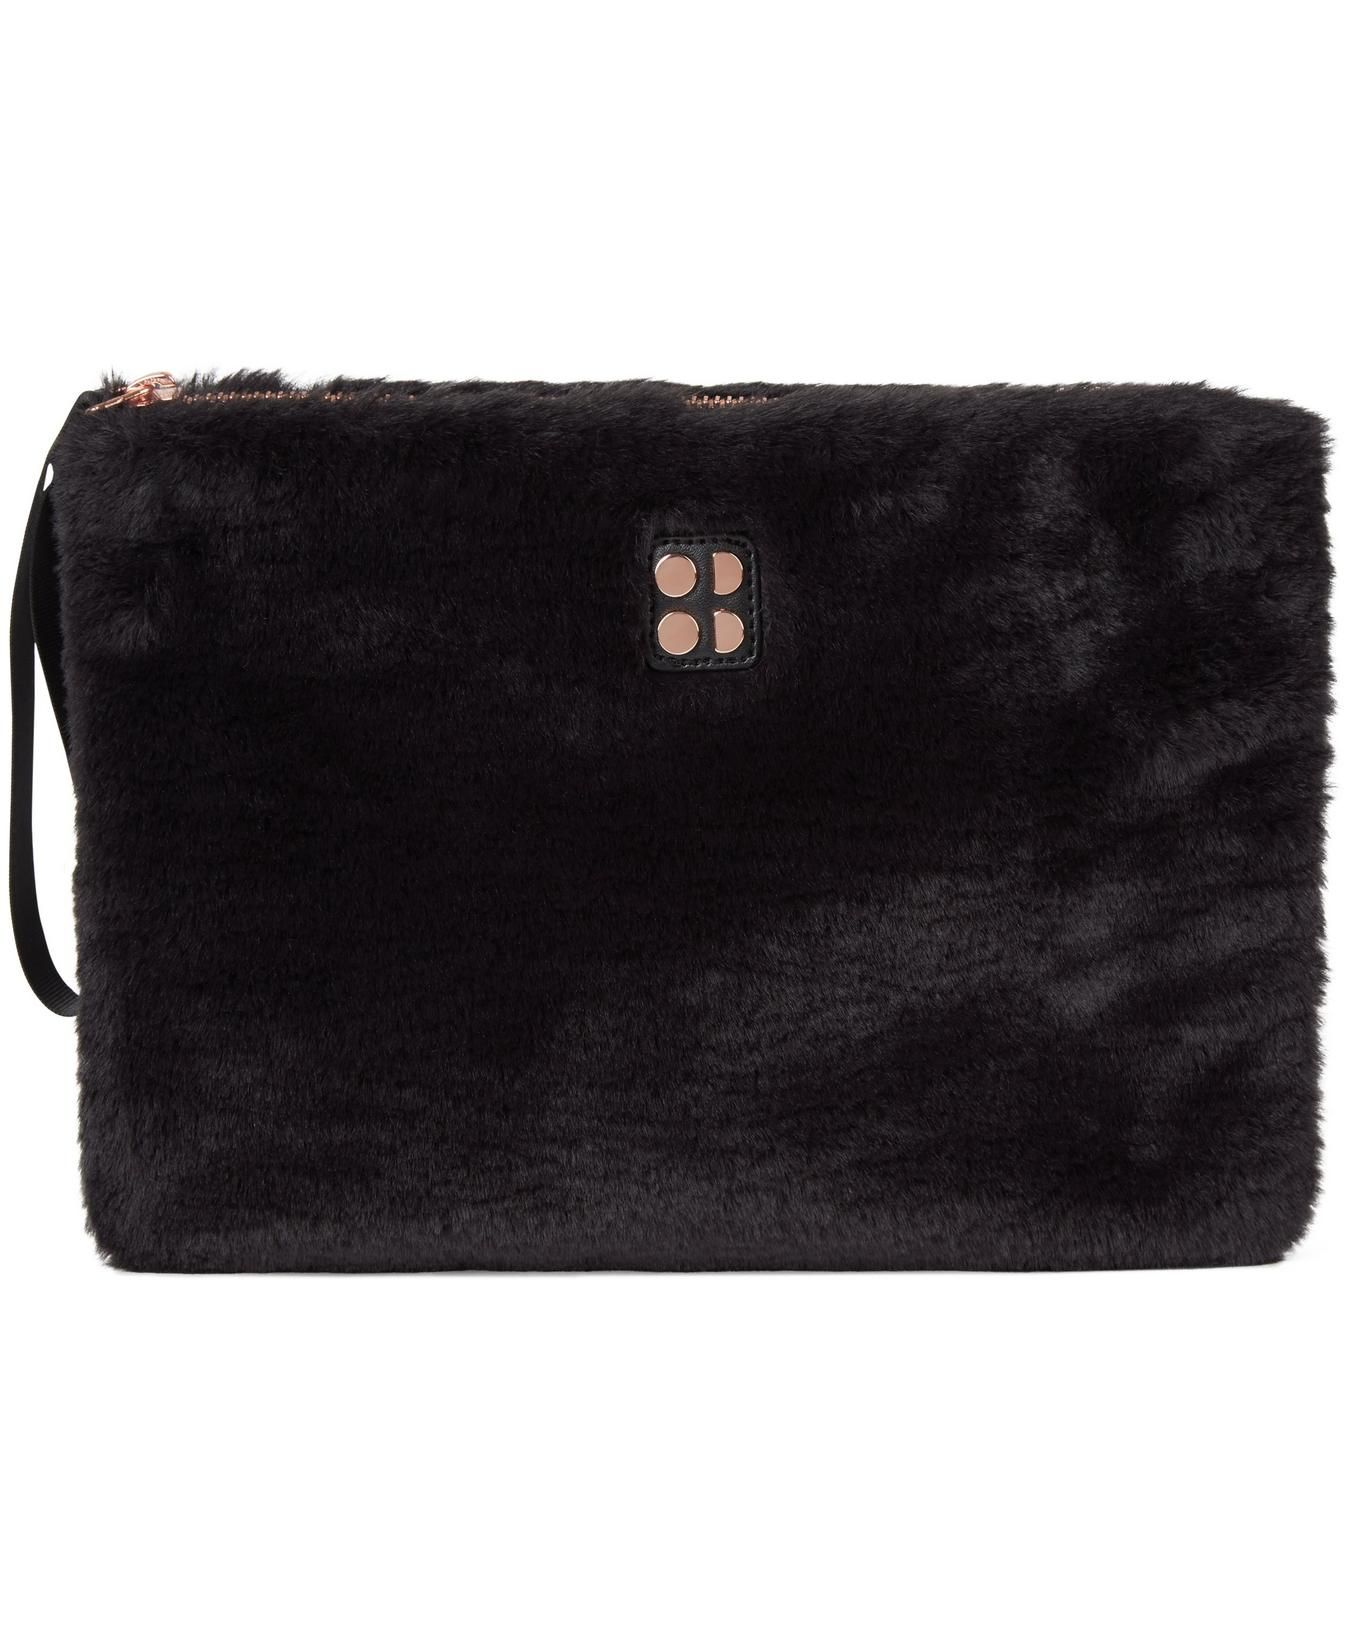 Fur Clutch Bag Black Women S Bags Sweaty Betty